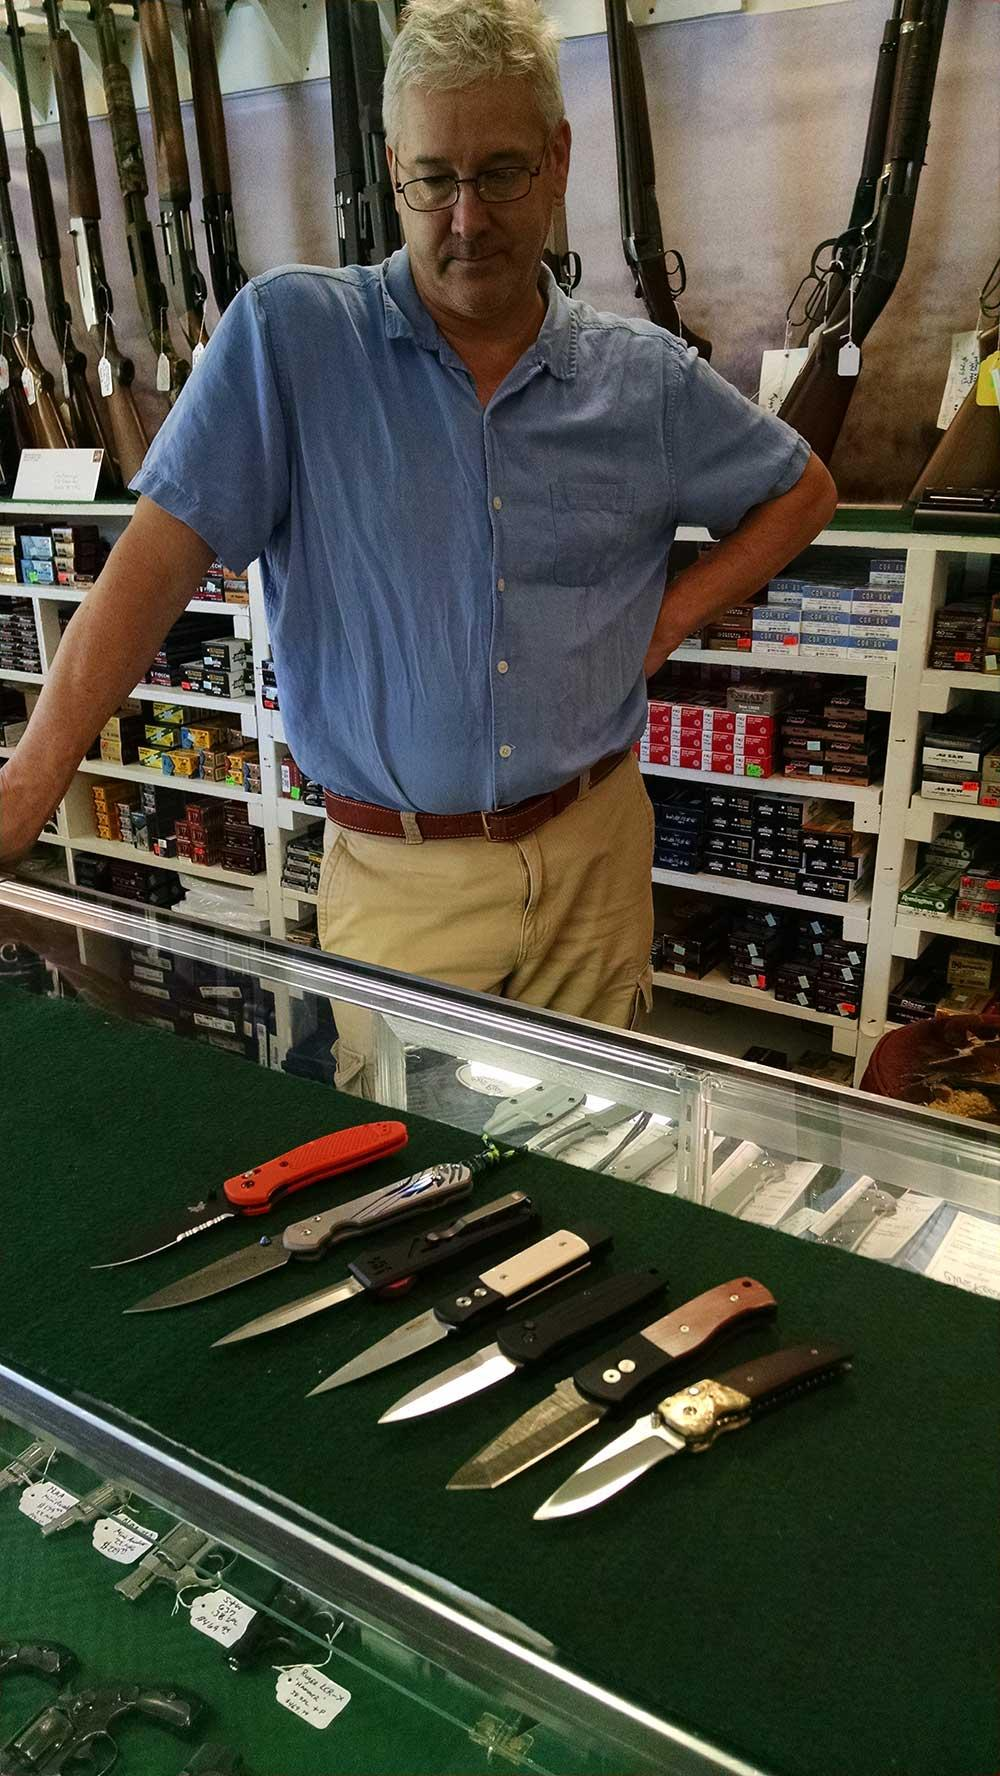 Switchblades Return To Tennessee As Knife Rights Movement